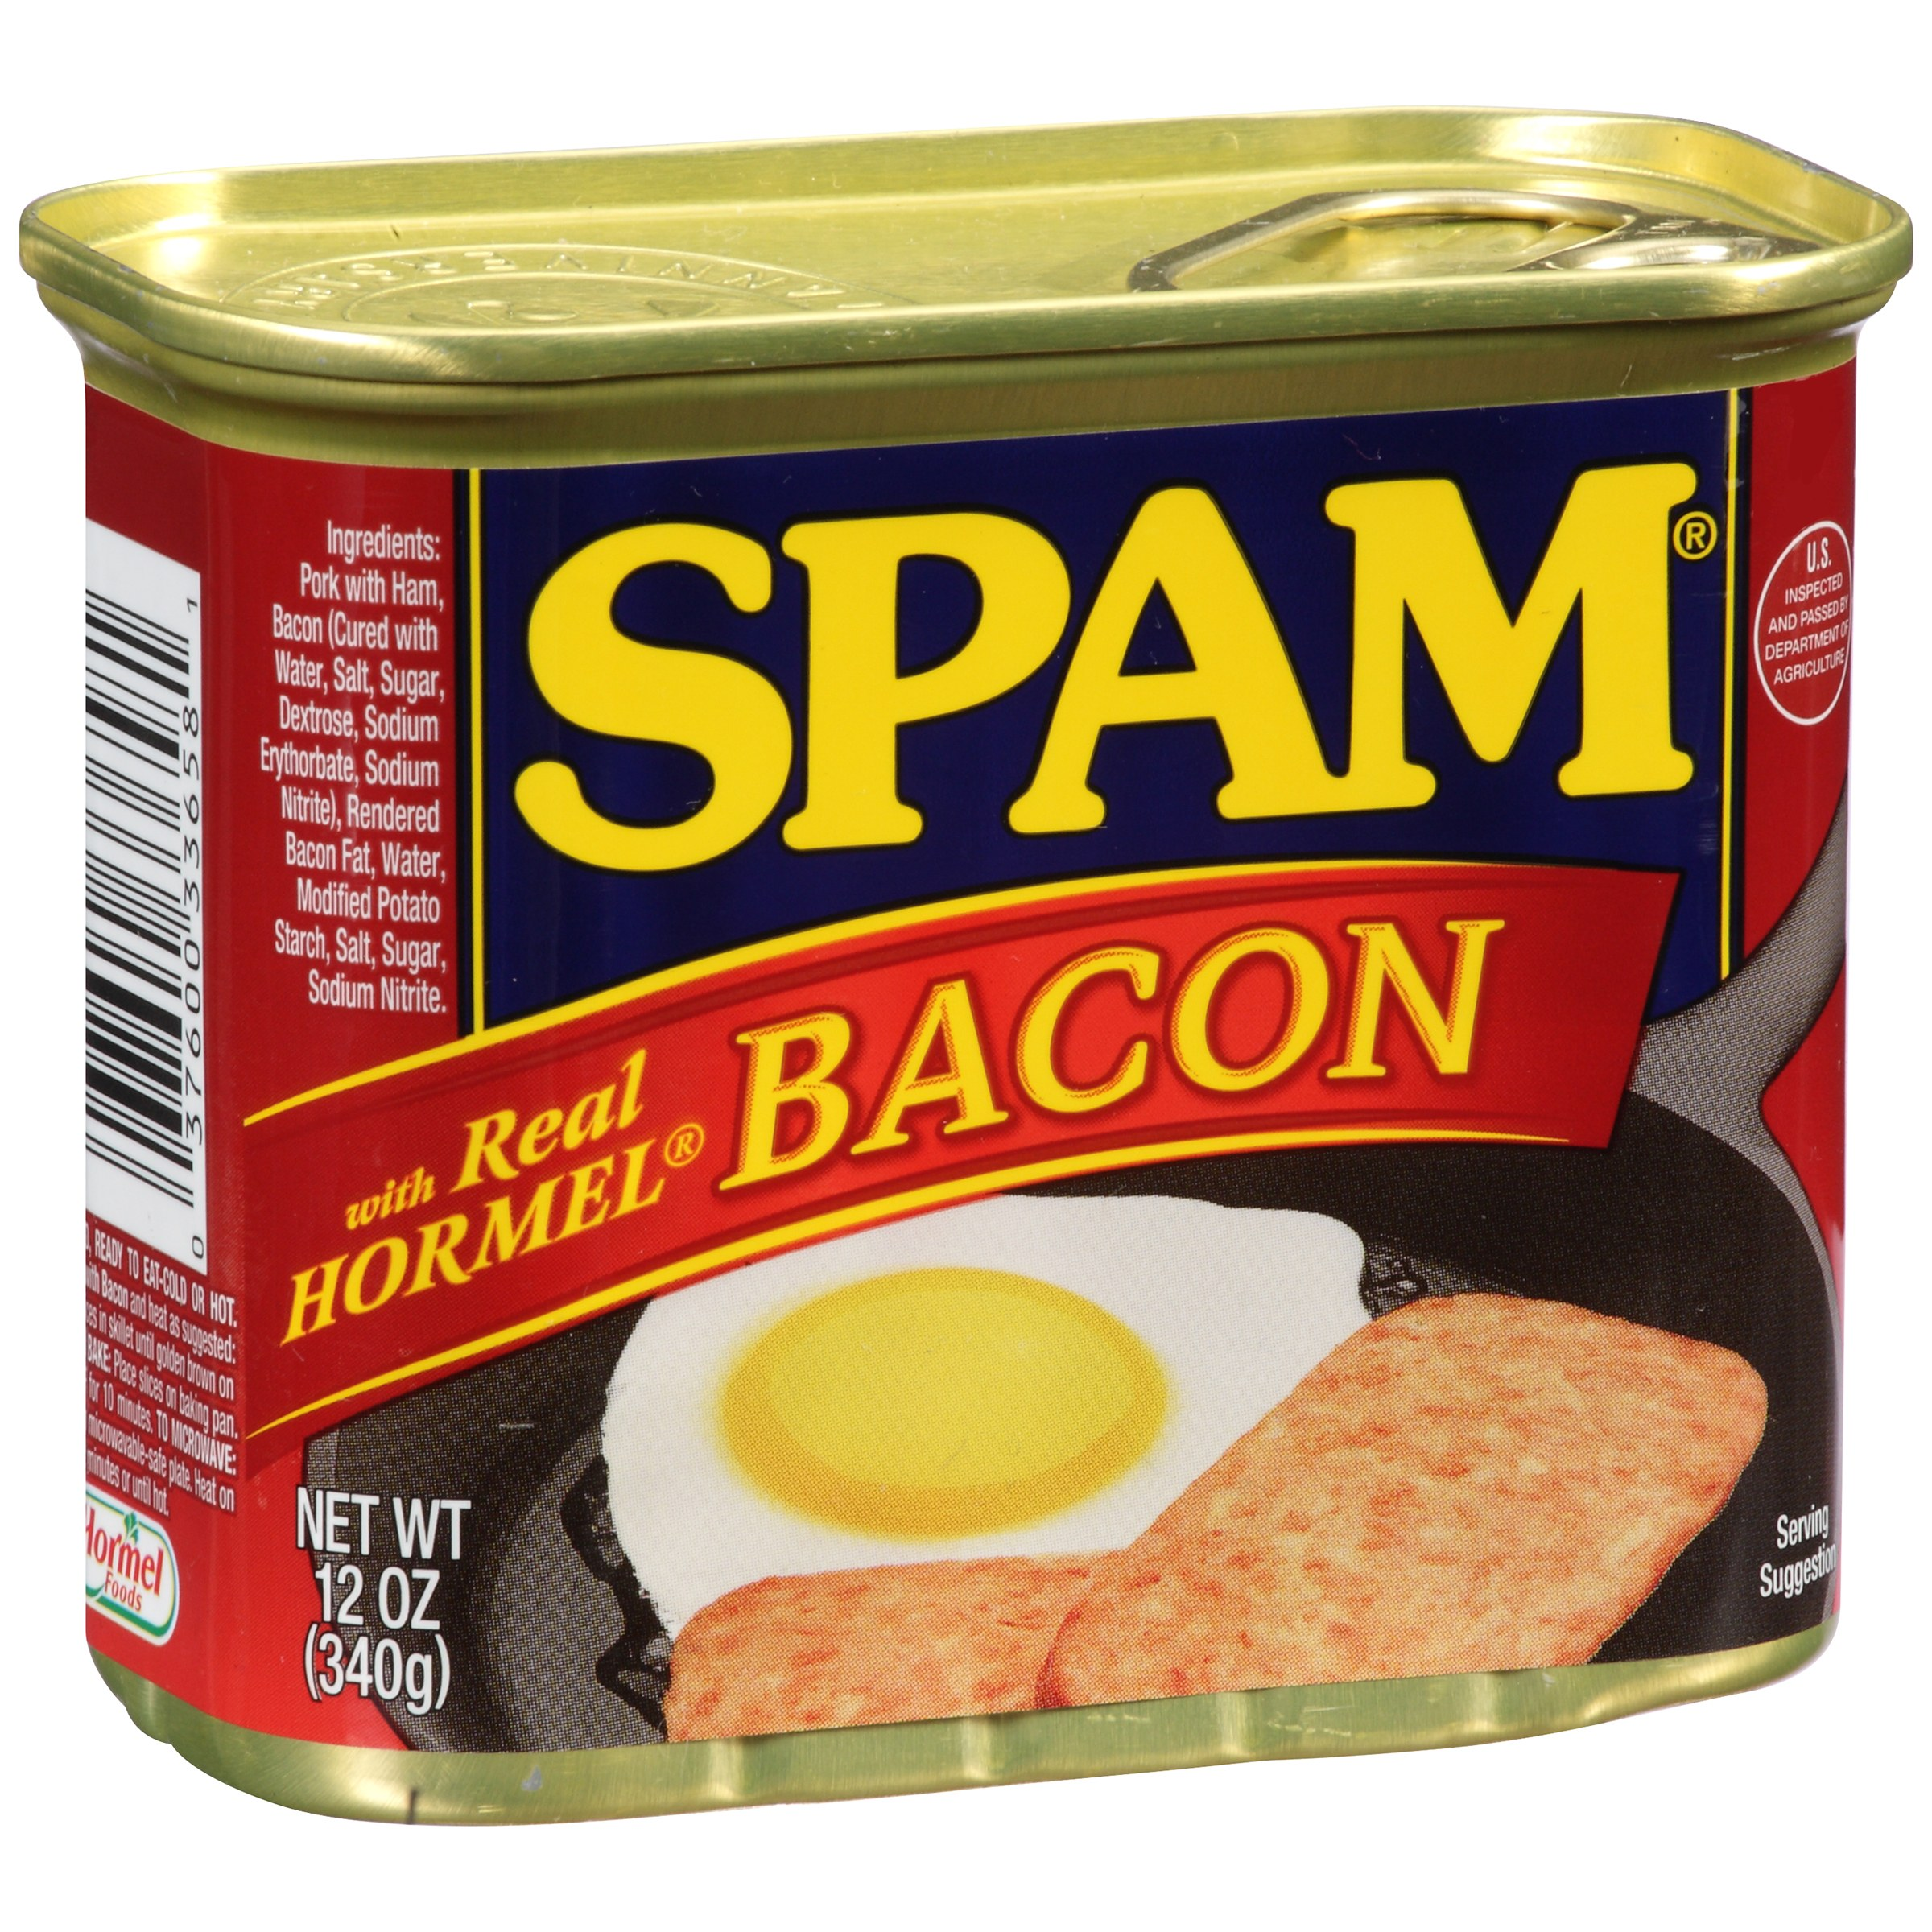 SPAM with Real HORMEL Bacon 12 oz. Can by Hormel